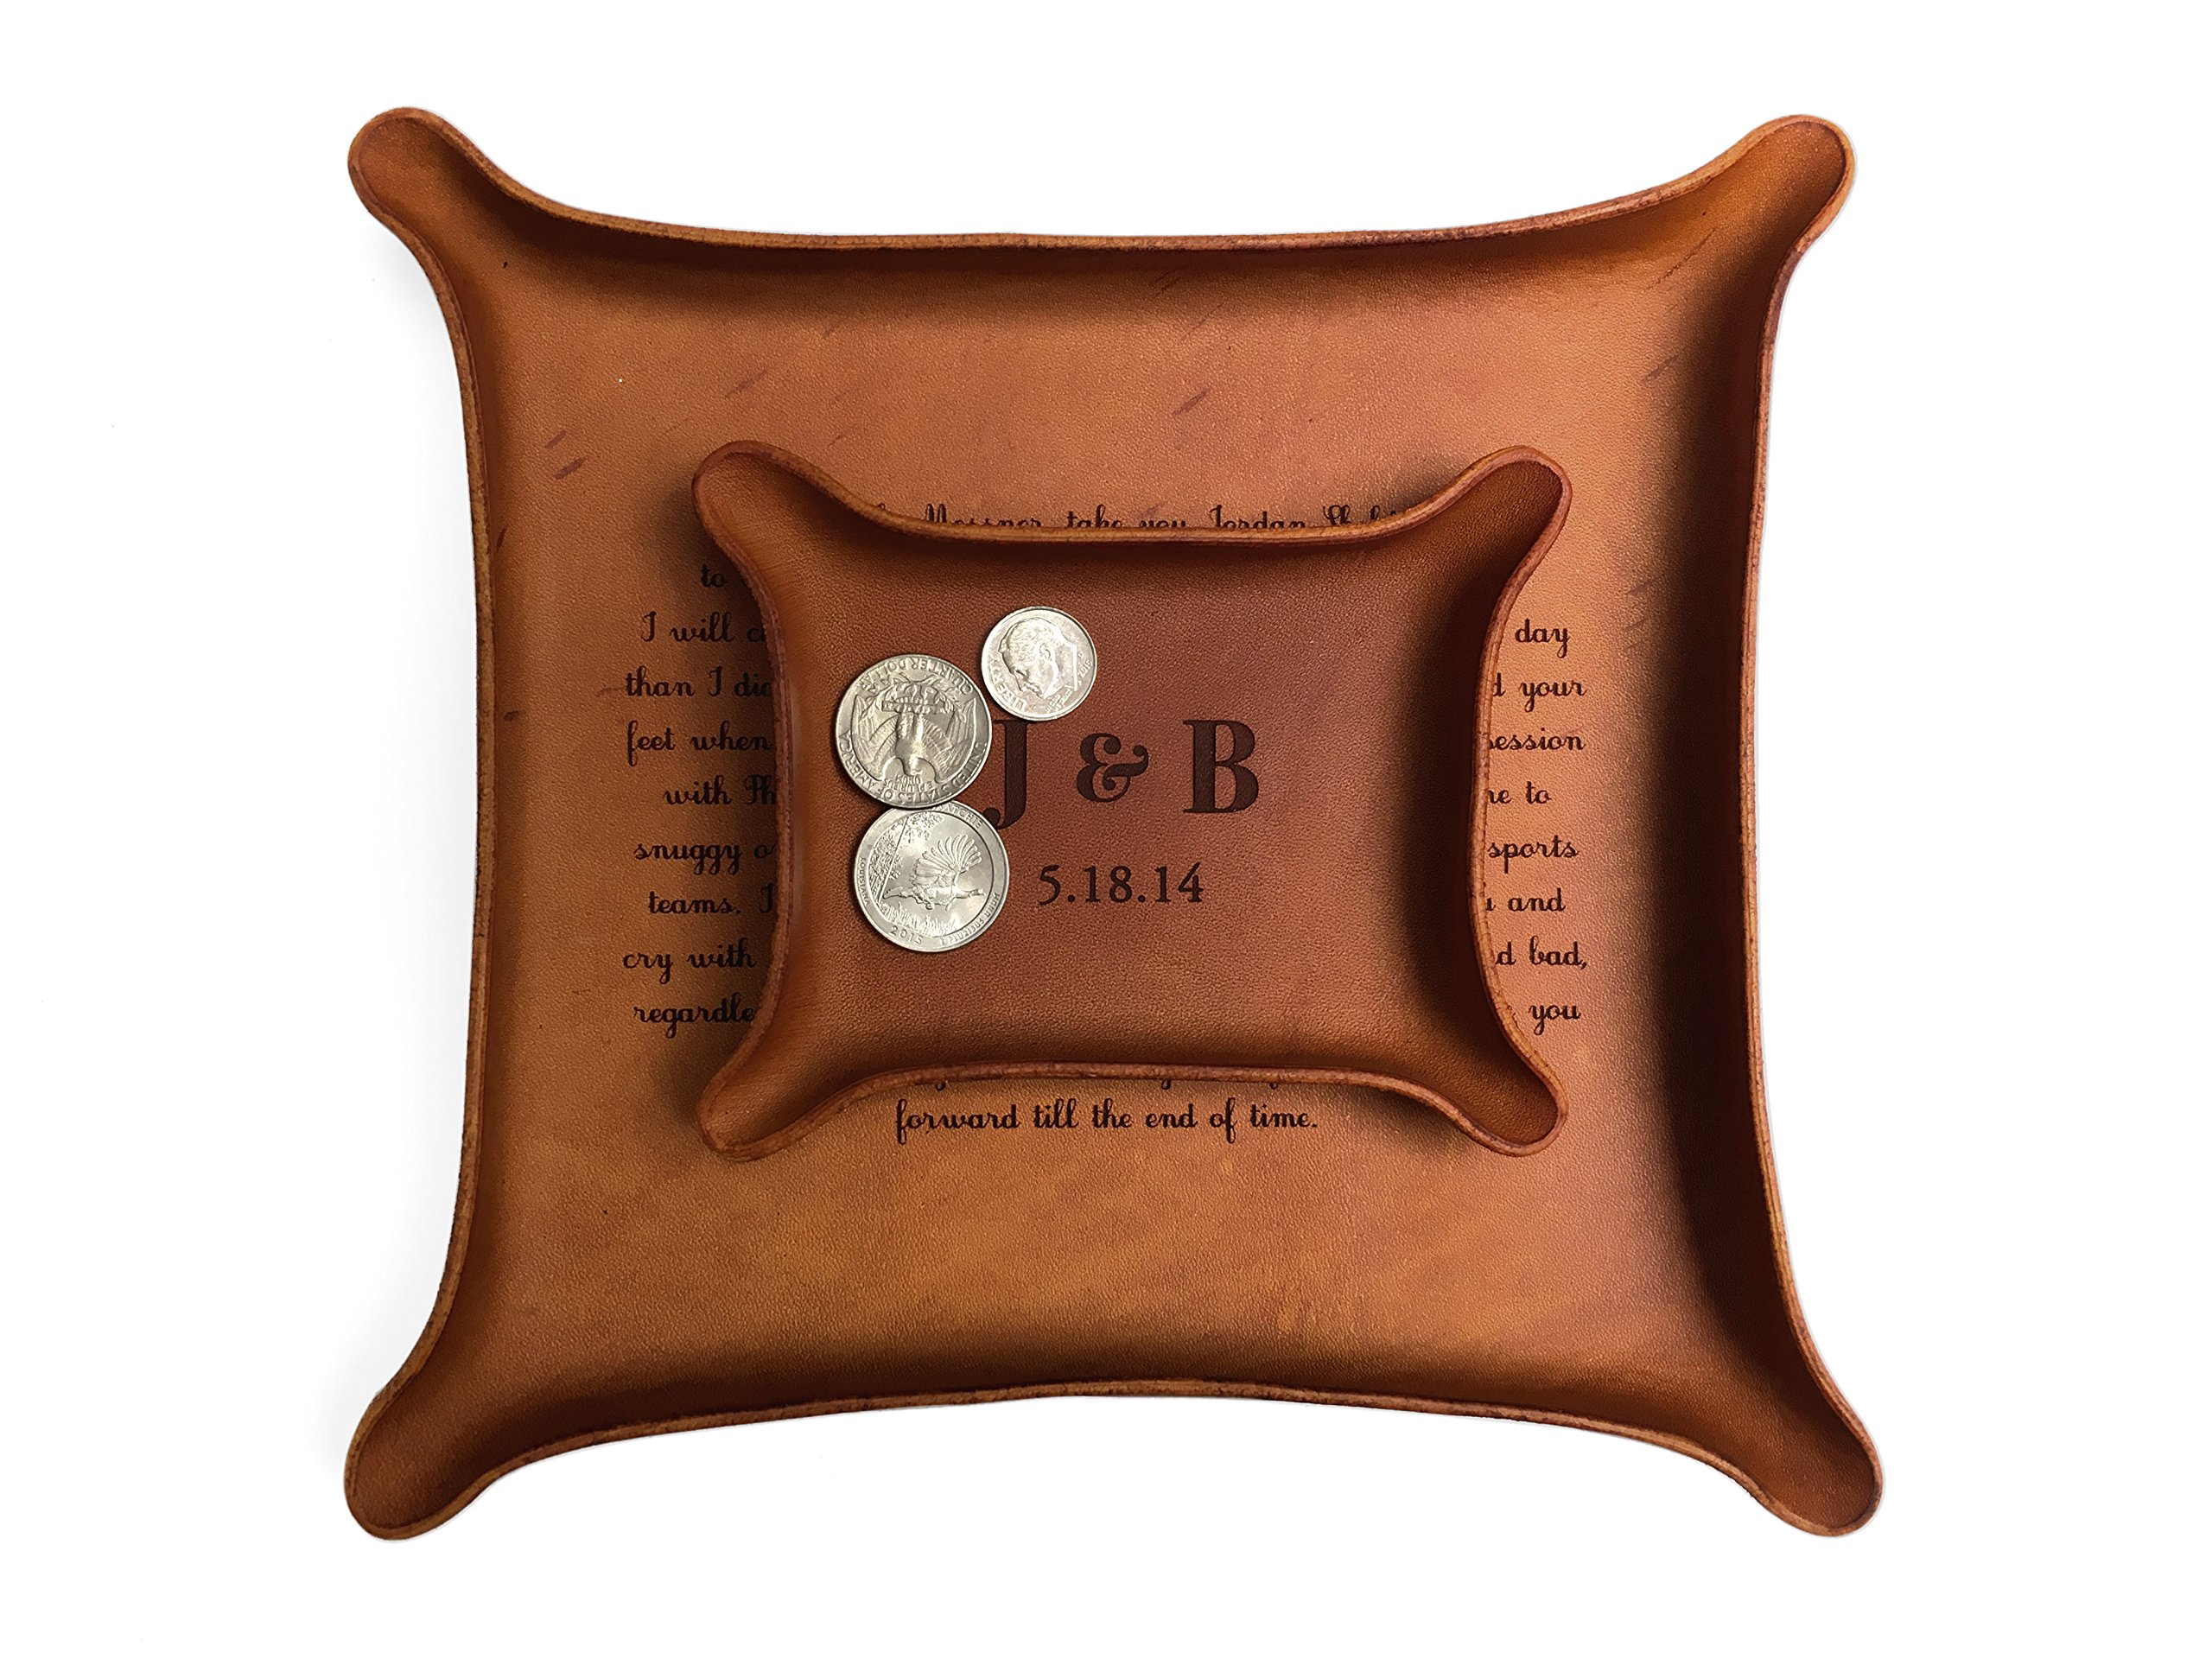 3rd Anniversary Gift / Personalized Leather Tray with Initials & Wedding Year (Small + Large Tray Set, Brown)